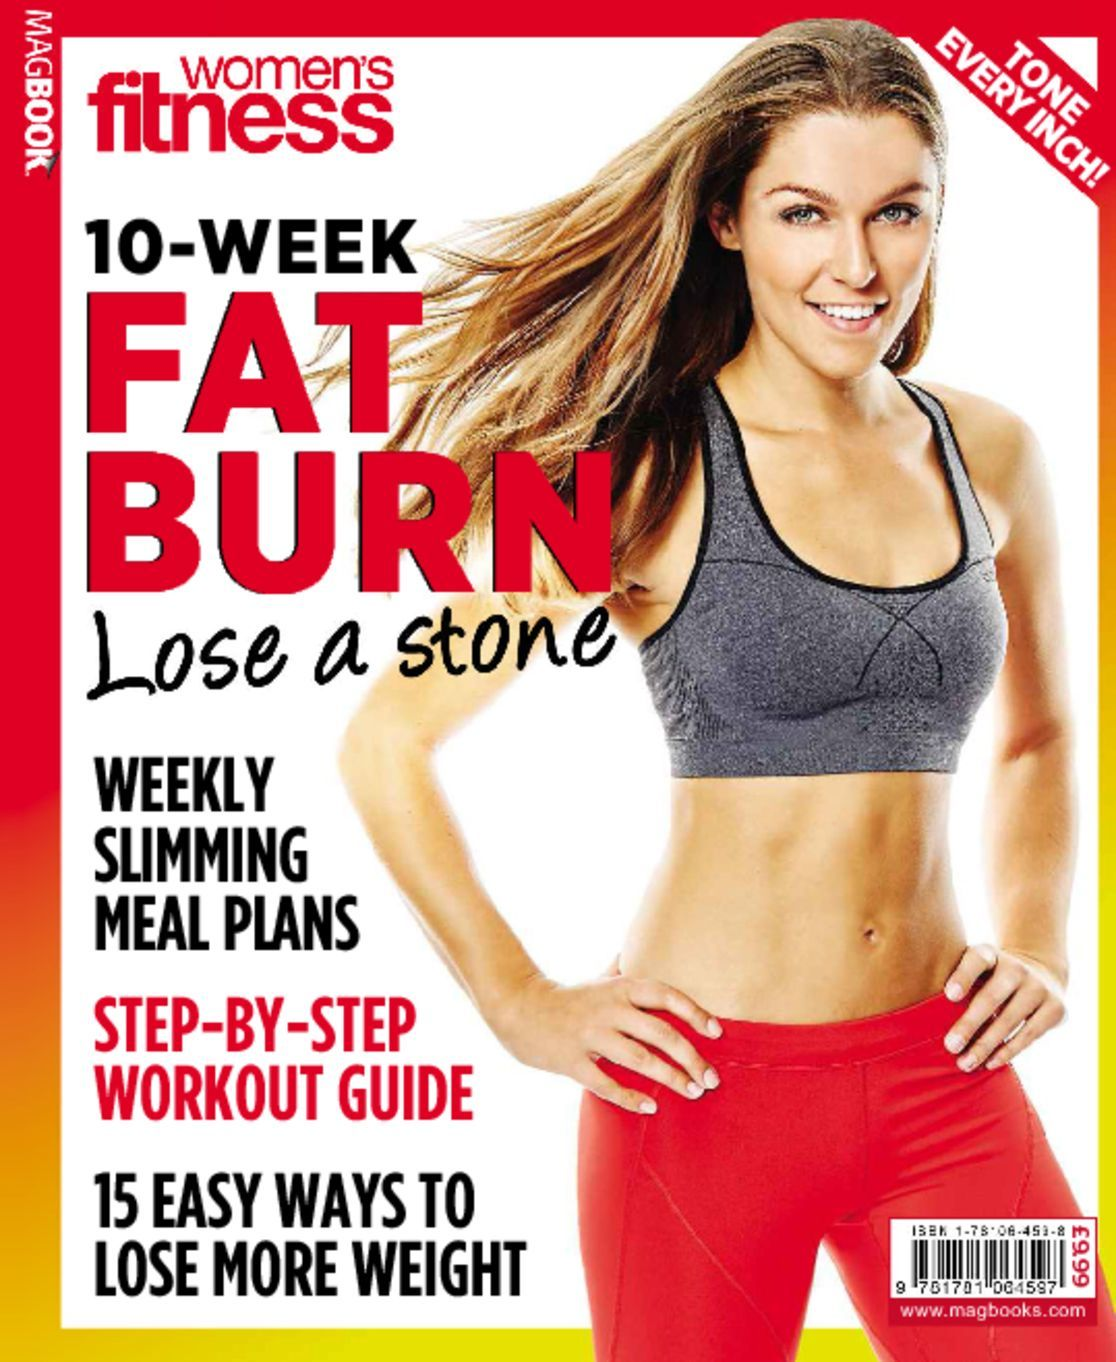 If you want to get your stomach flatter, you need to follow a healthy diet and exercise with the right frequency and intensity. 10-Week Flat Belly Guide shows you how to do just that, with every week consisting of meal plans that are varied and filling, as well as weekly workout schedules and cardio guidelines you can do anywhere and even adapt to suit your own schedule. Start today and work your way towards your new flat stomach!